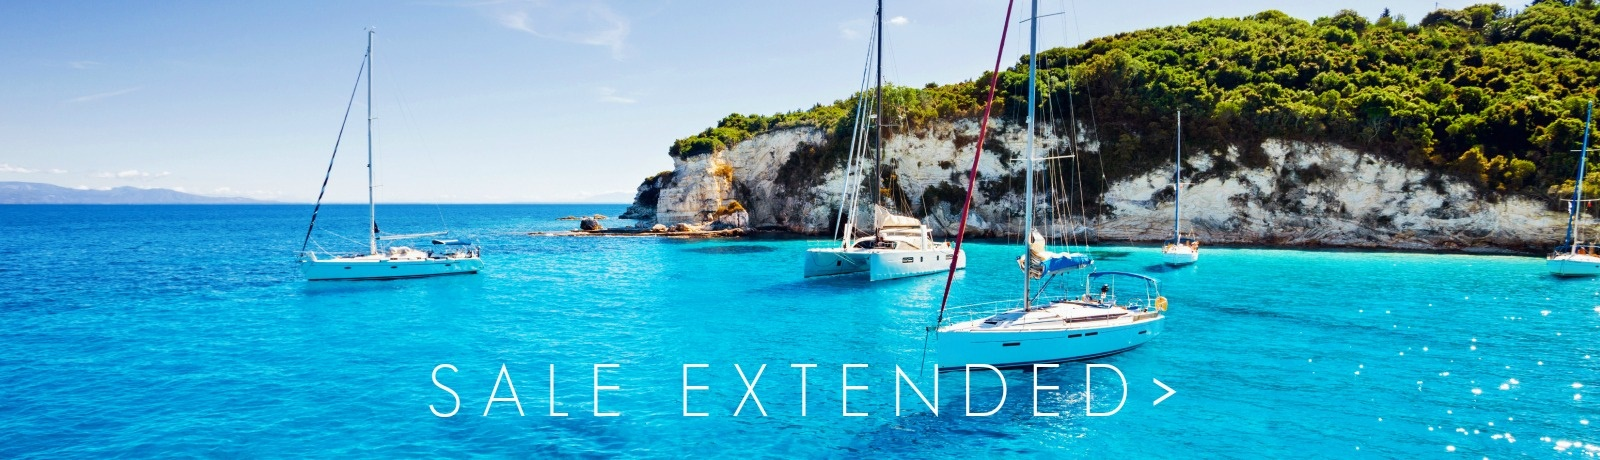 Classic sale extended